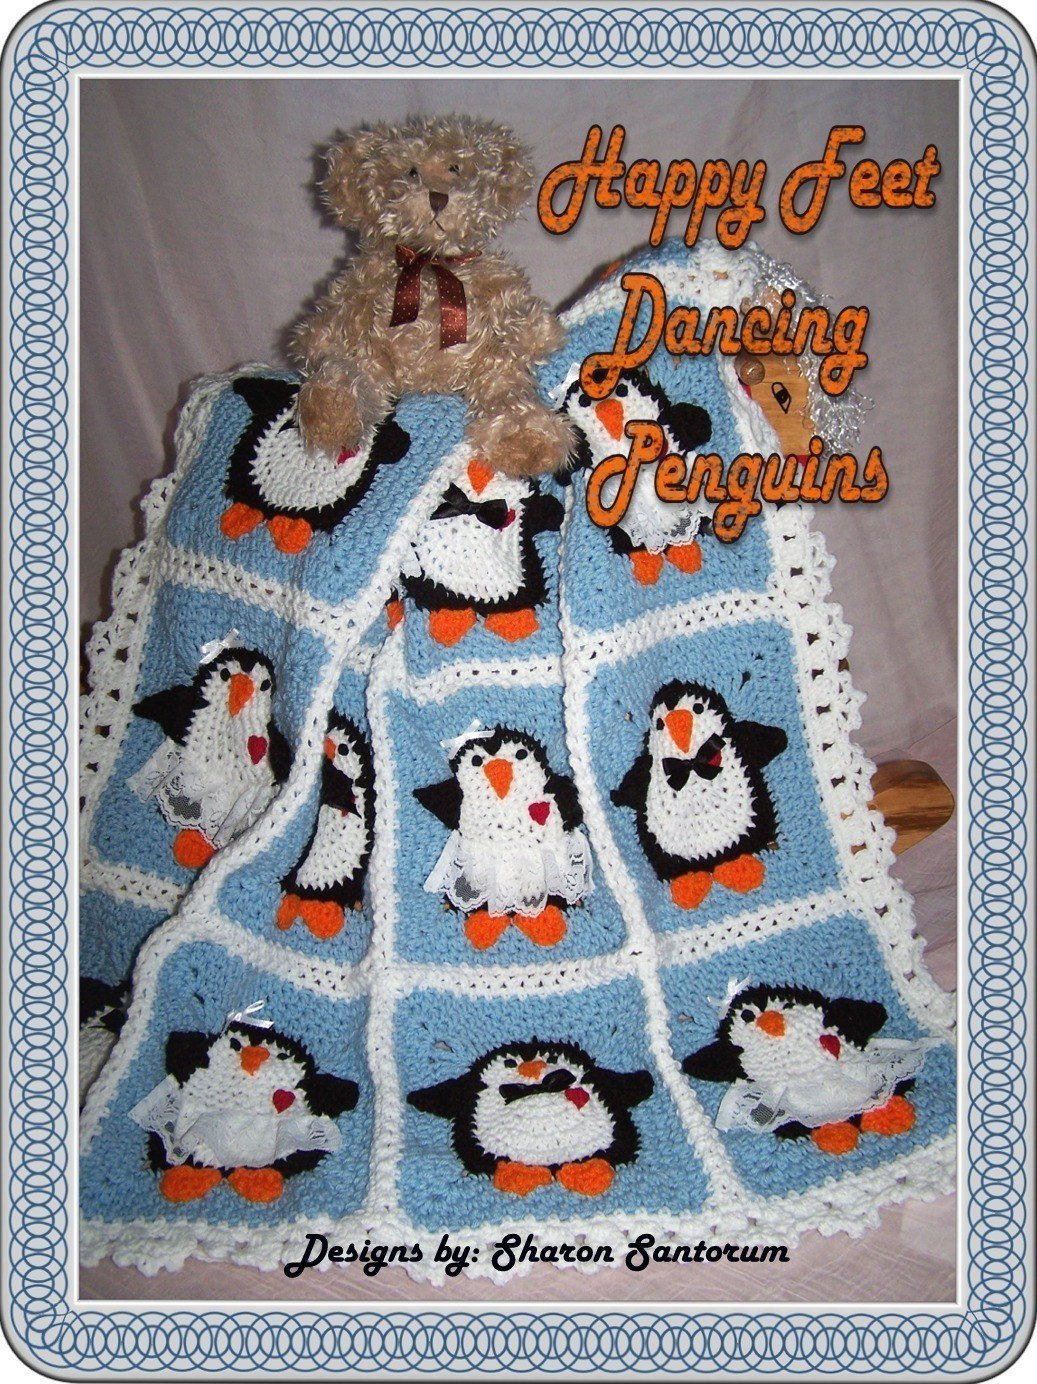 Baby Boy Crochet Blanket Patterns Beautiful Dancing Penguins Crochet Baby Afghan or Blanket Pattern Pdf Of Baby Boy Crochet Blanket Patterns Beautiful Marvelous Monkey Blankets Free Crochet Patterns